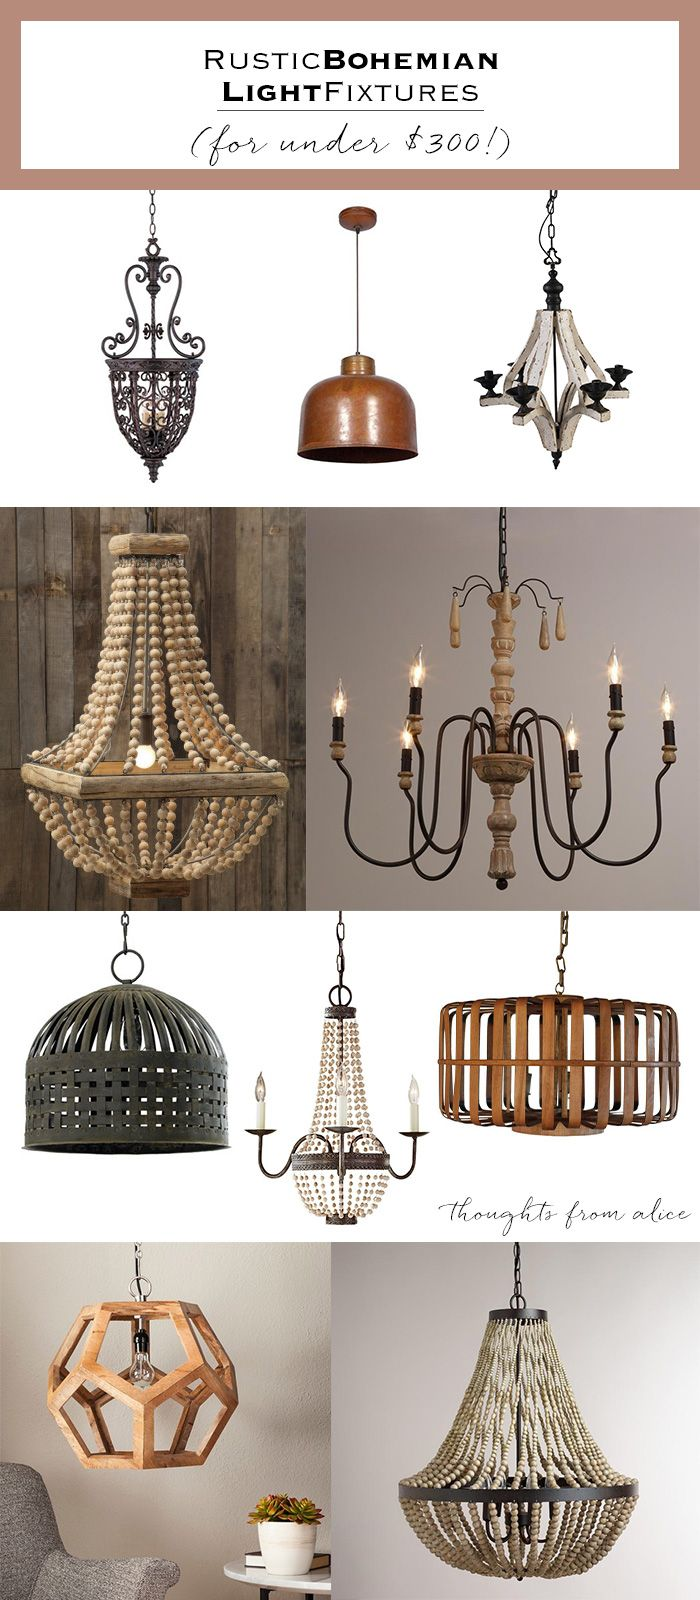 Rustic Bohemian Light Fixtures under $300  sc 1 st  Pinterest & Rustic Bohemian Light Fixtures under $300 | Bohemian Lights and ...